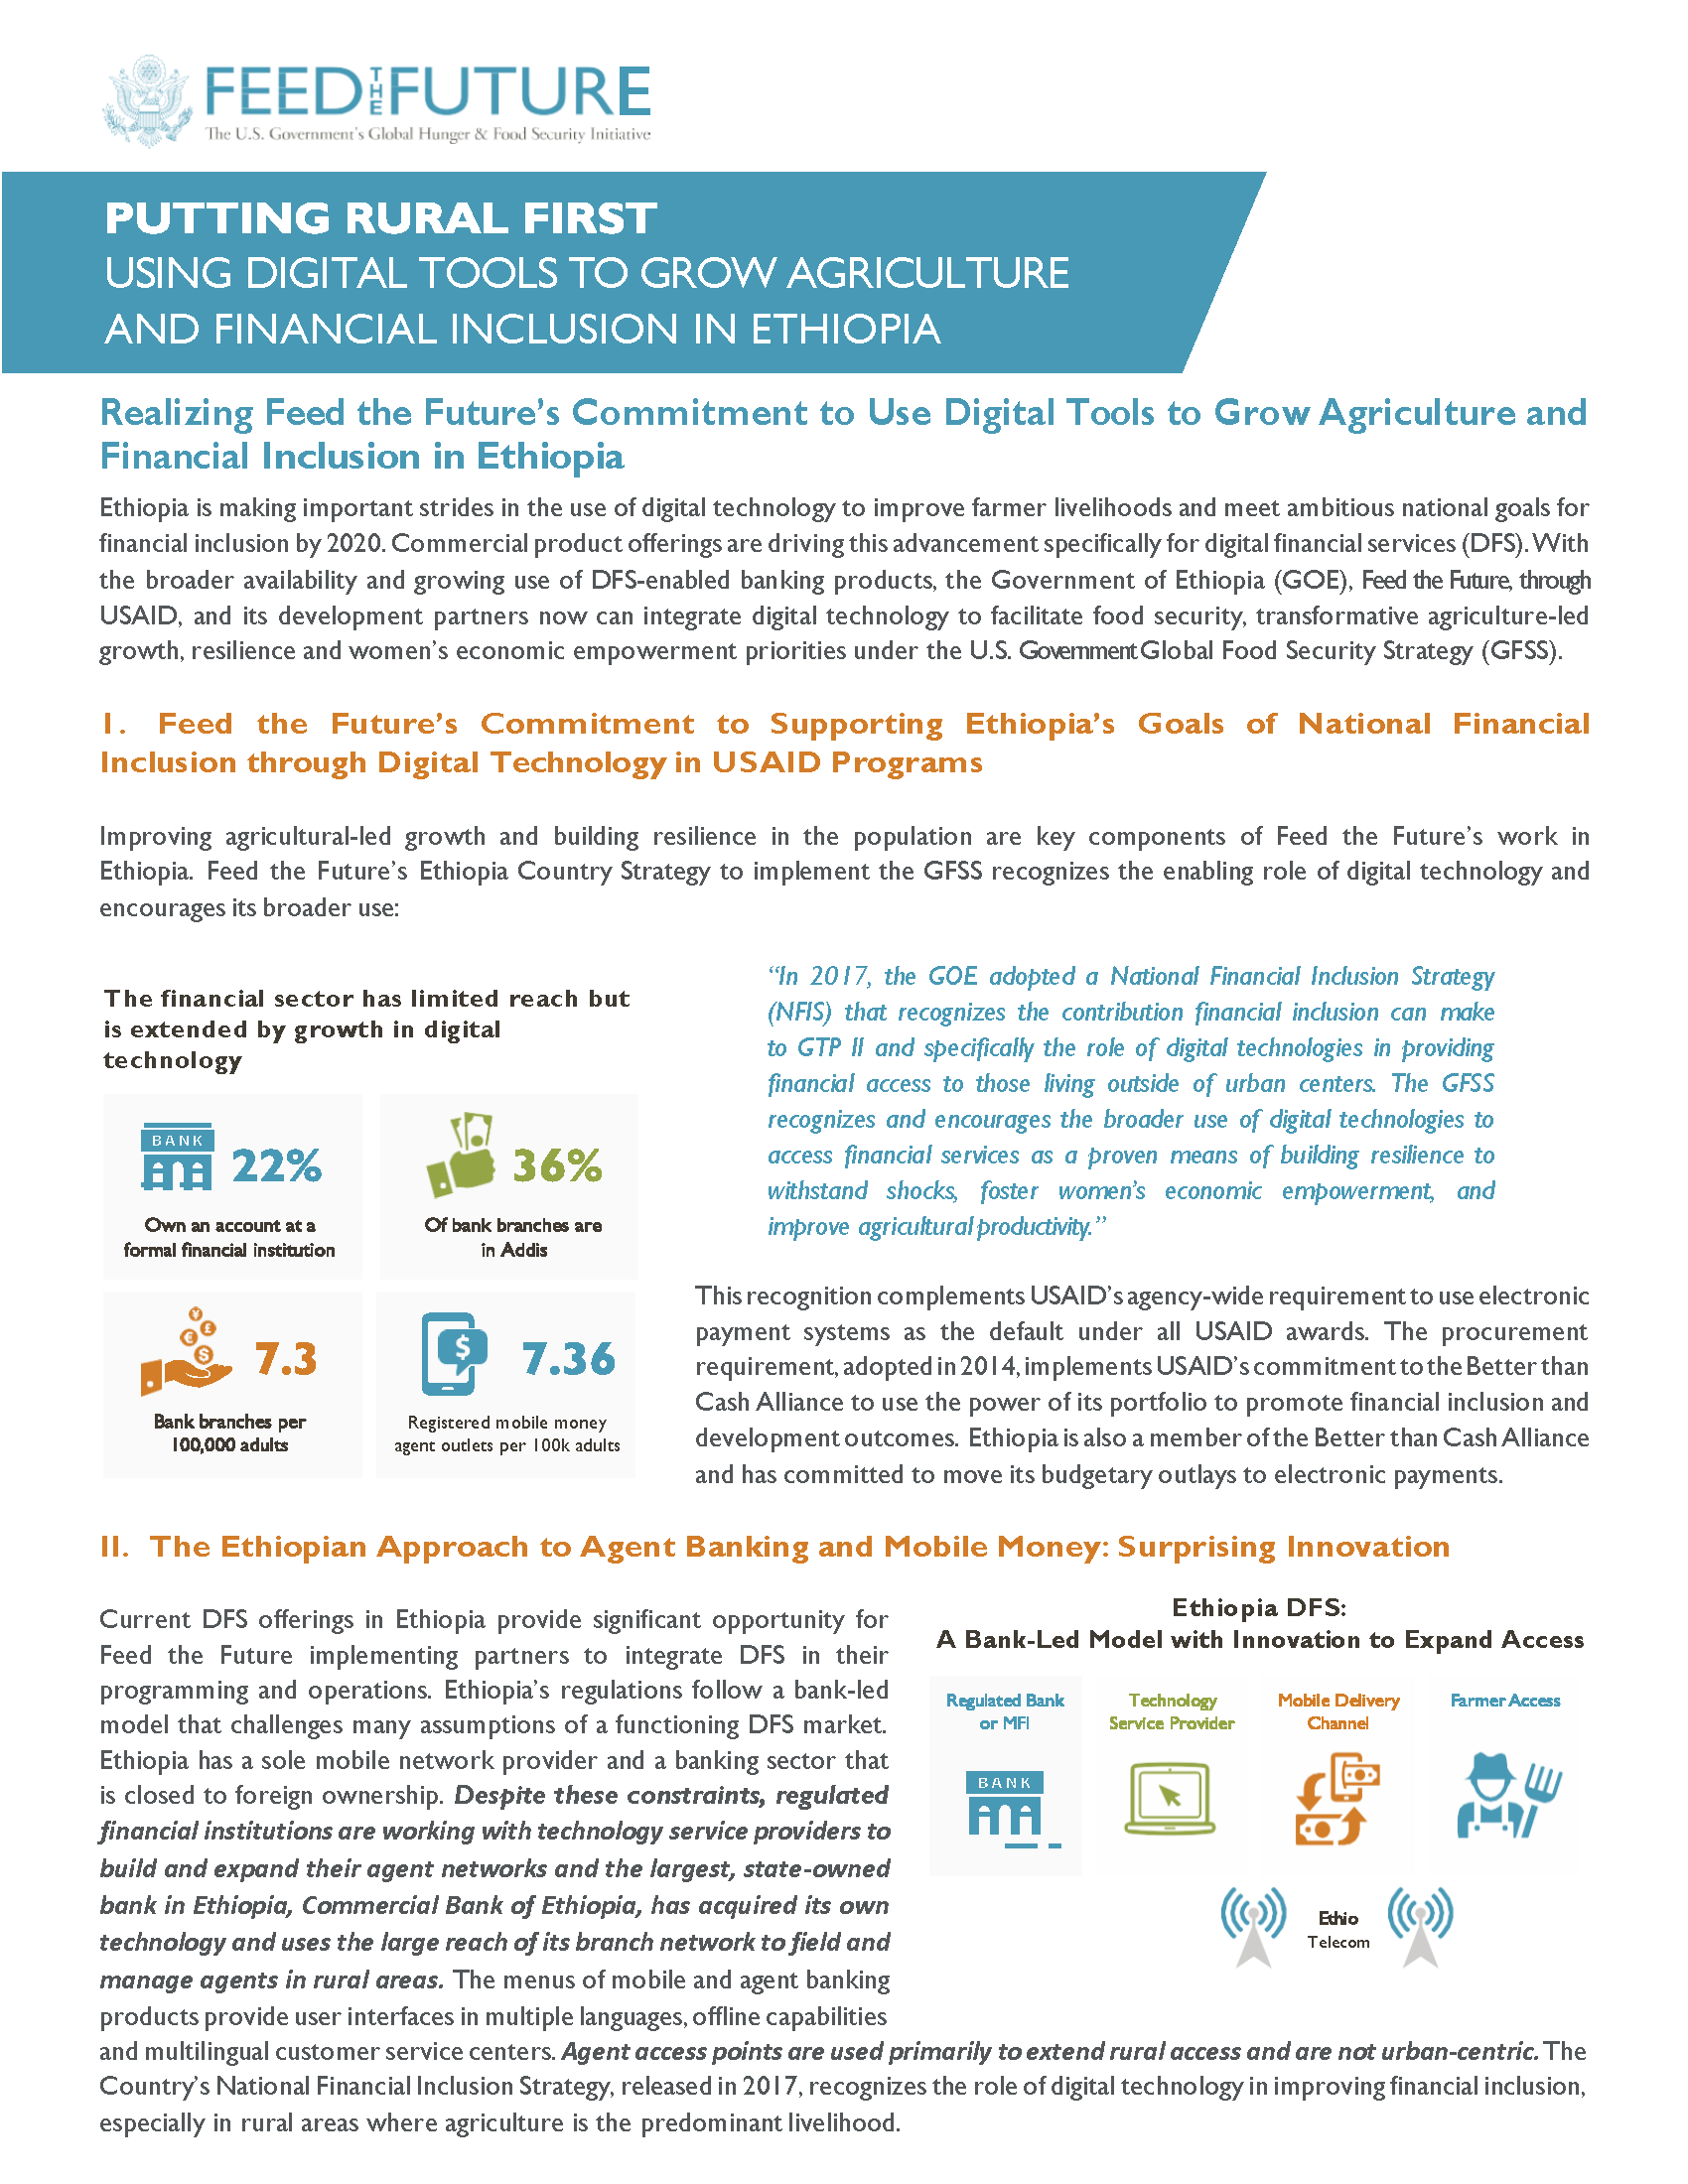 Fact Sheet: Using Digital Tools to Grow Agriculture and Financial Inclusion in Ethiopia